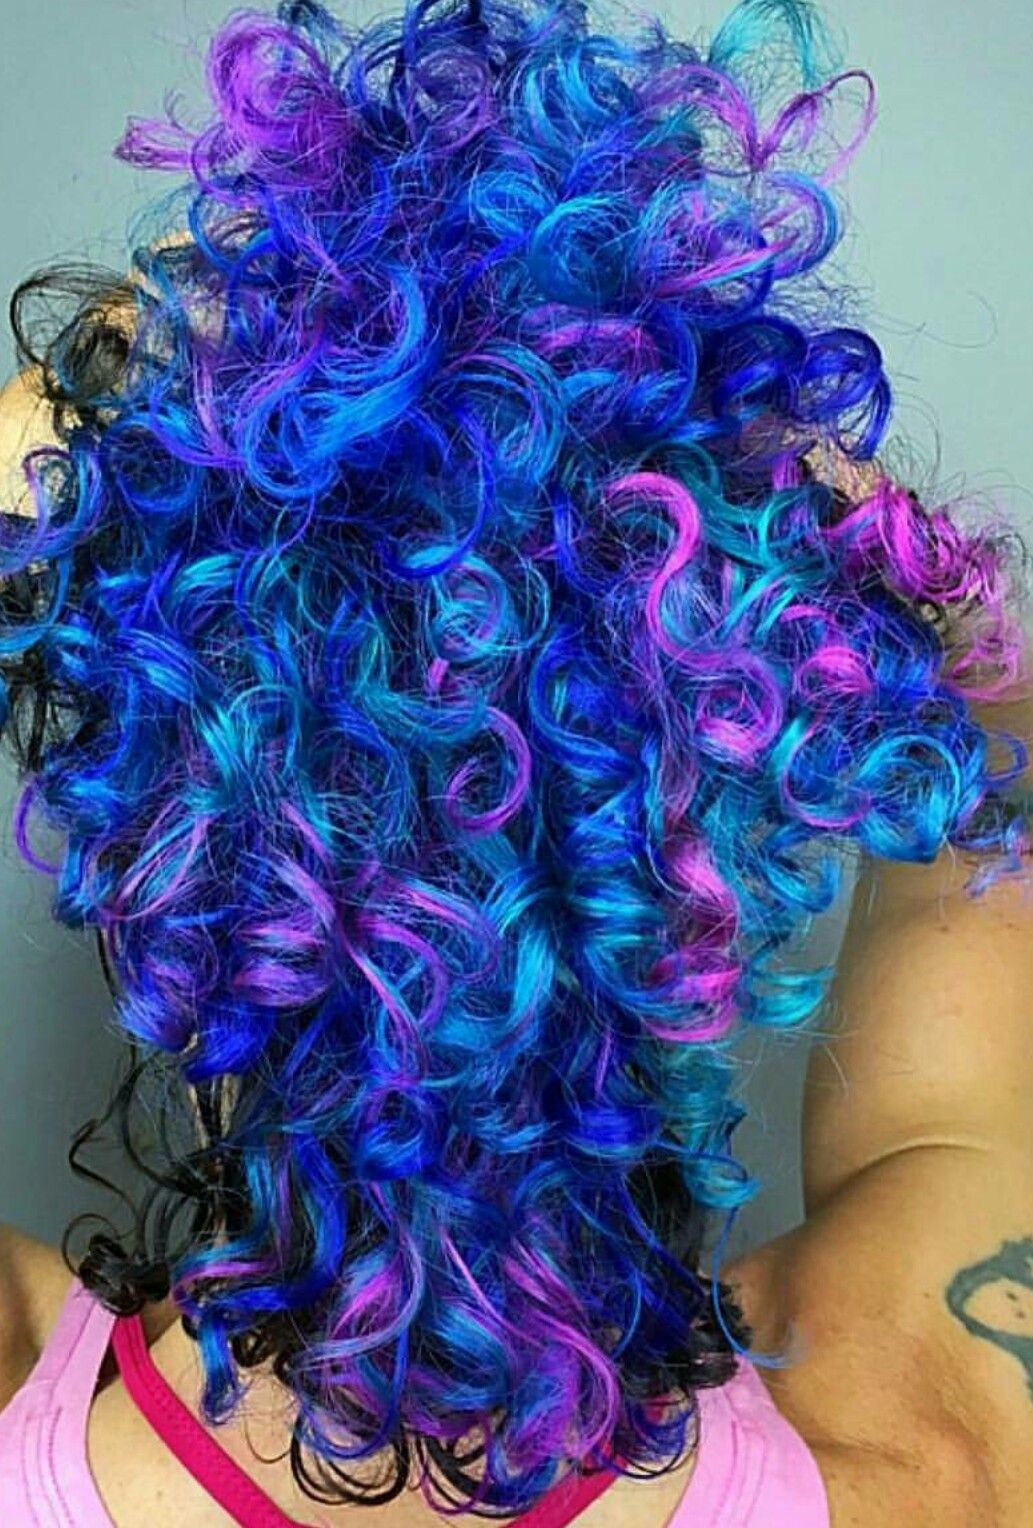 Blue Purple Mixed Dyed Curly Hair Iroirocolors Dyed Curly Hair Colored Curly Hair Curly Hair Model